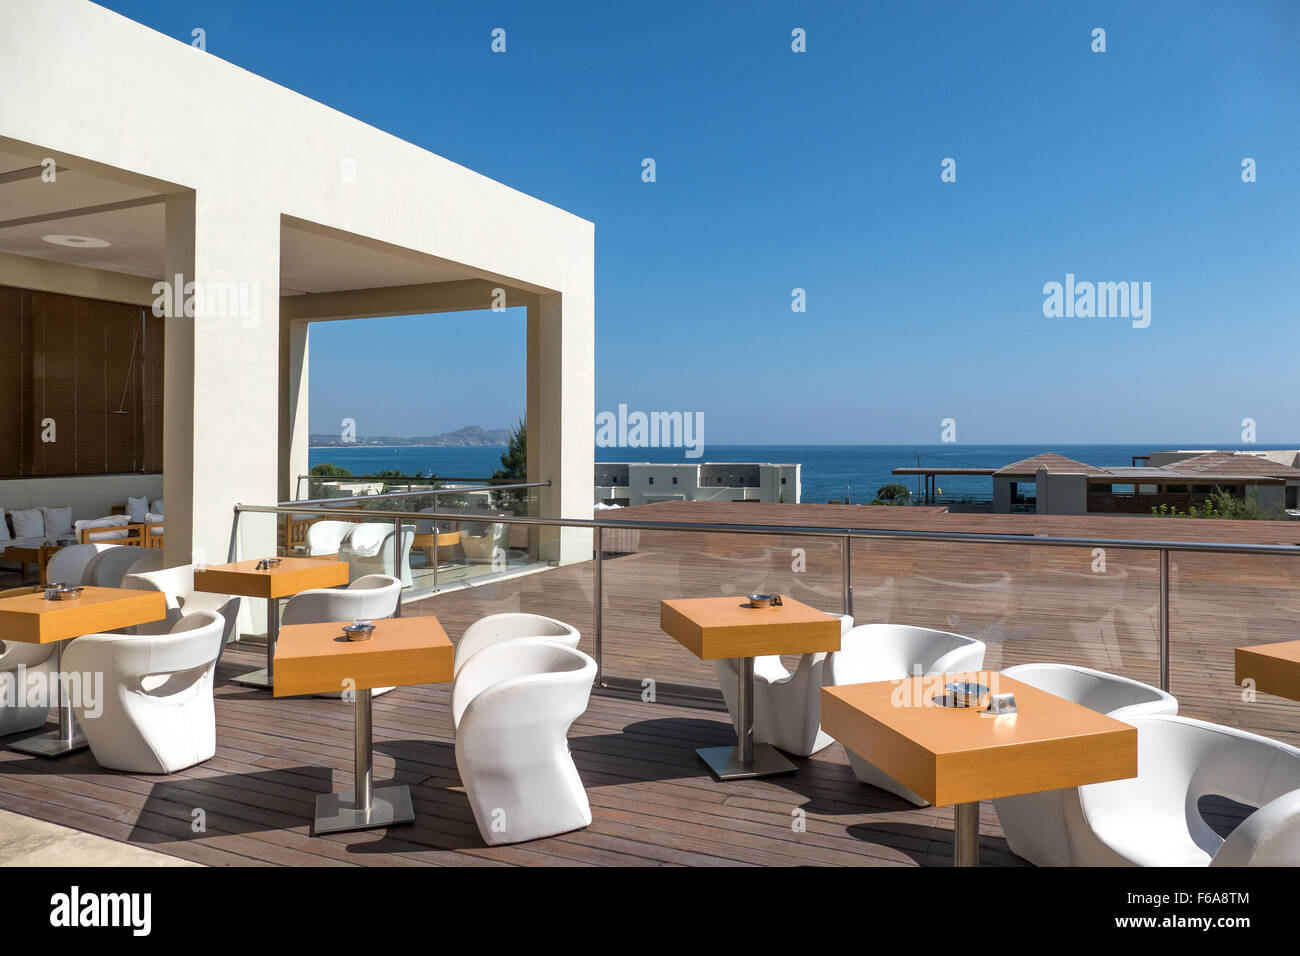 Modern and contemporary outside bar seating and tables. - Stock Image